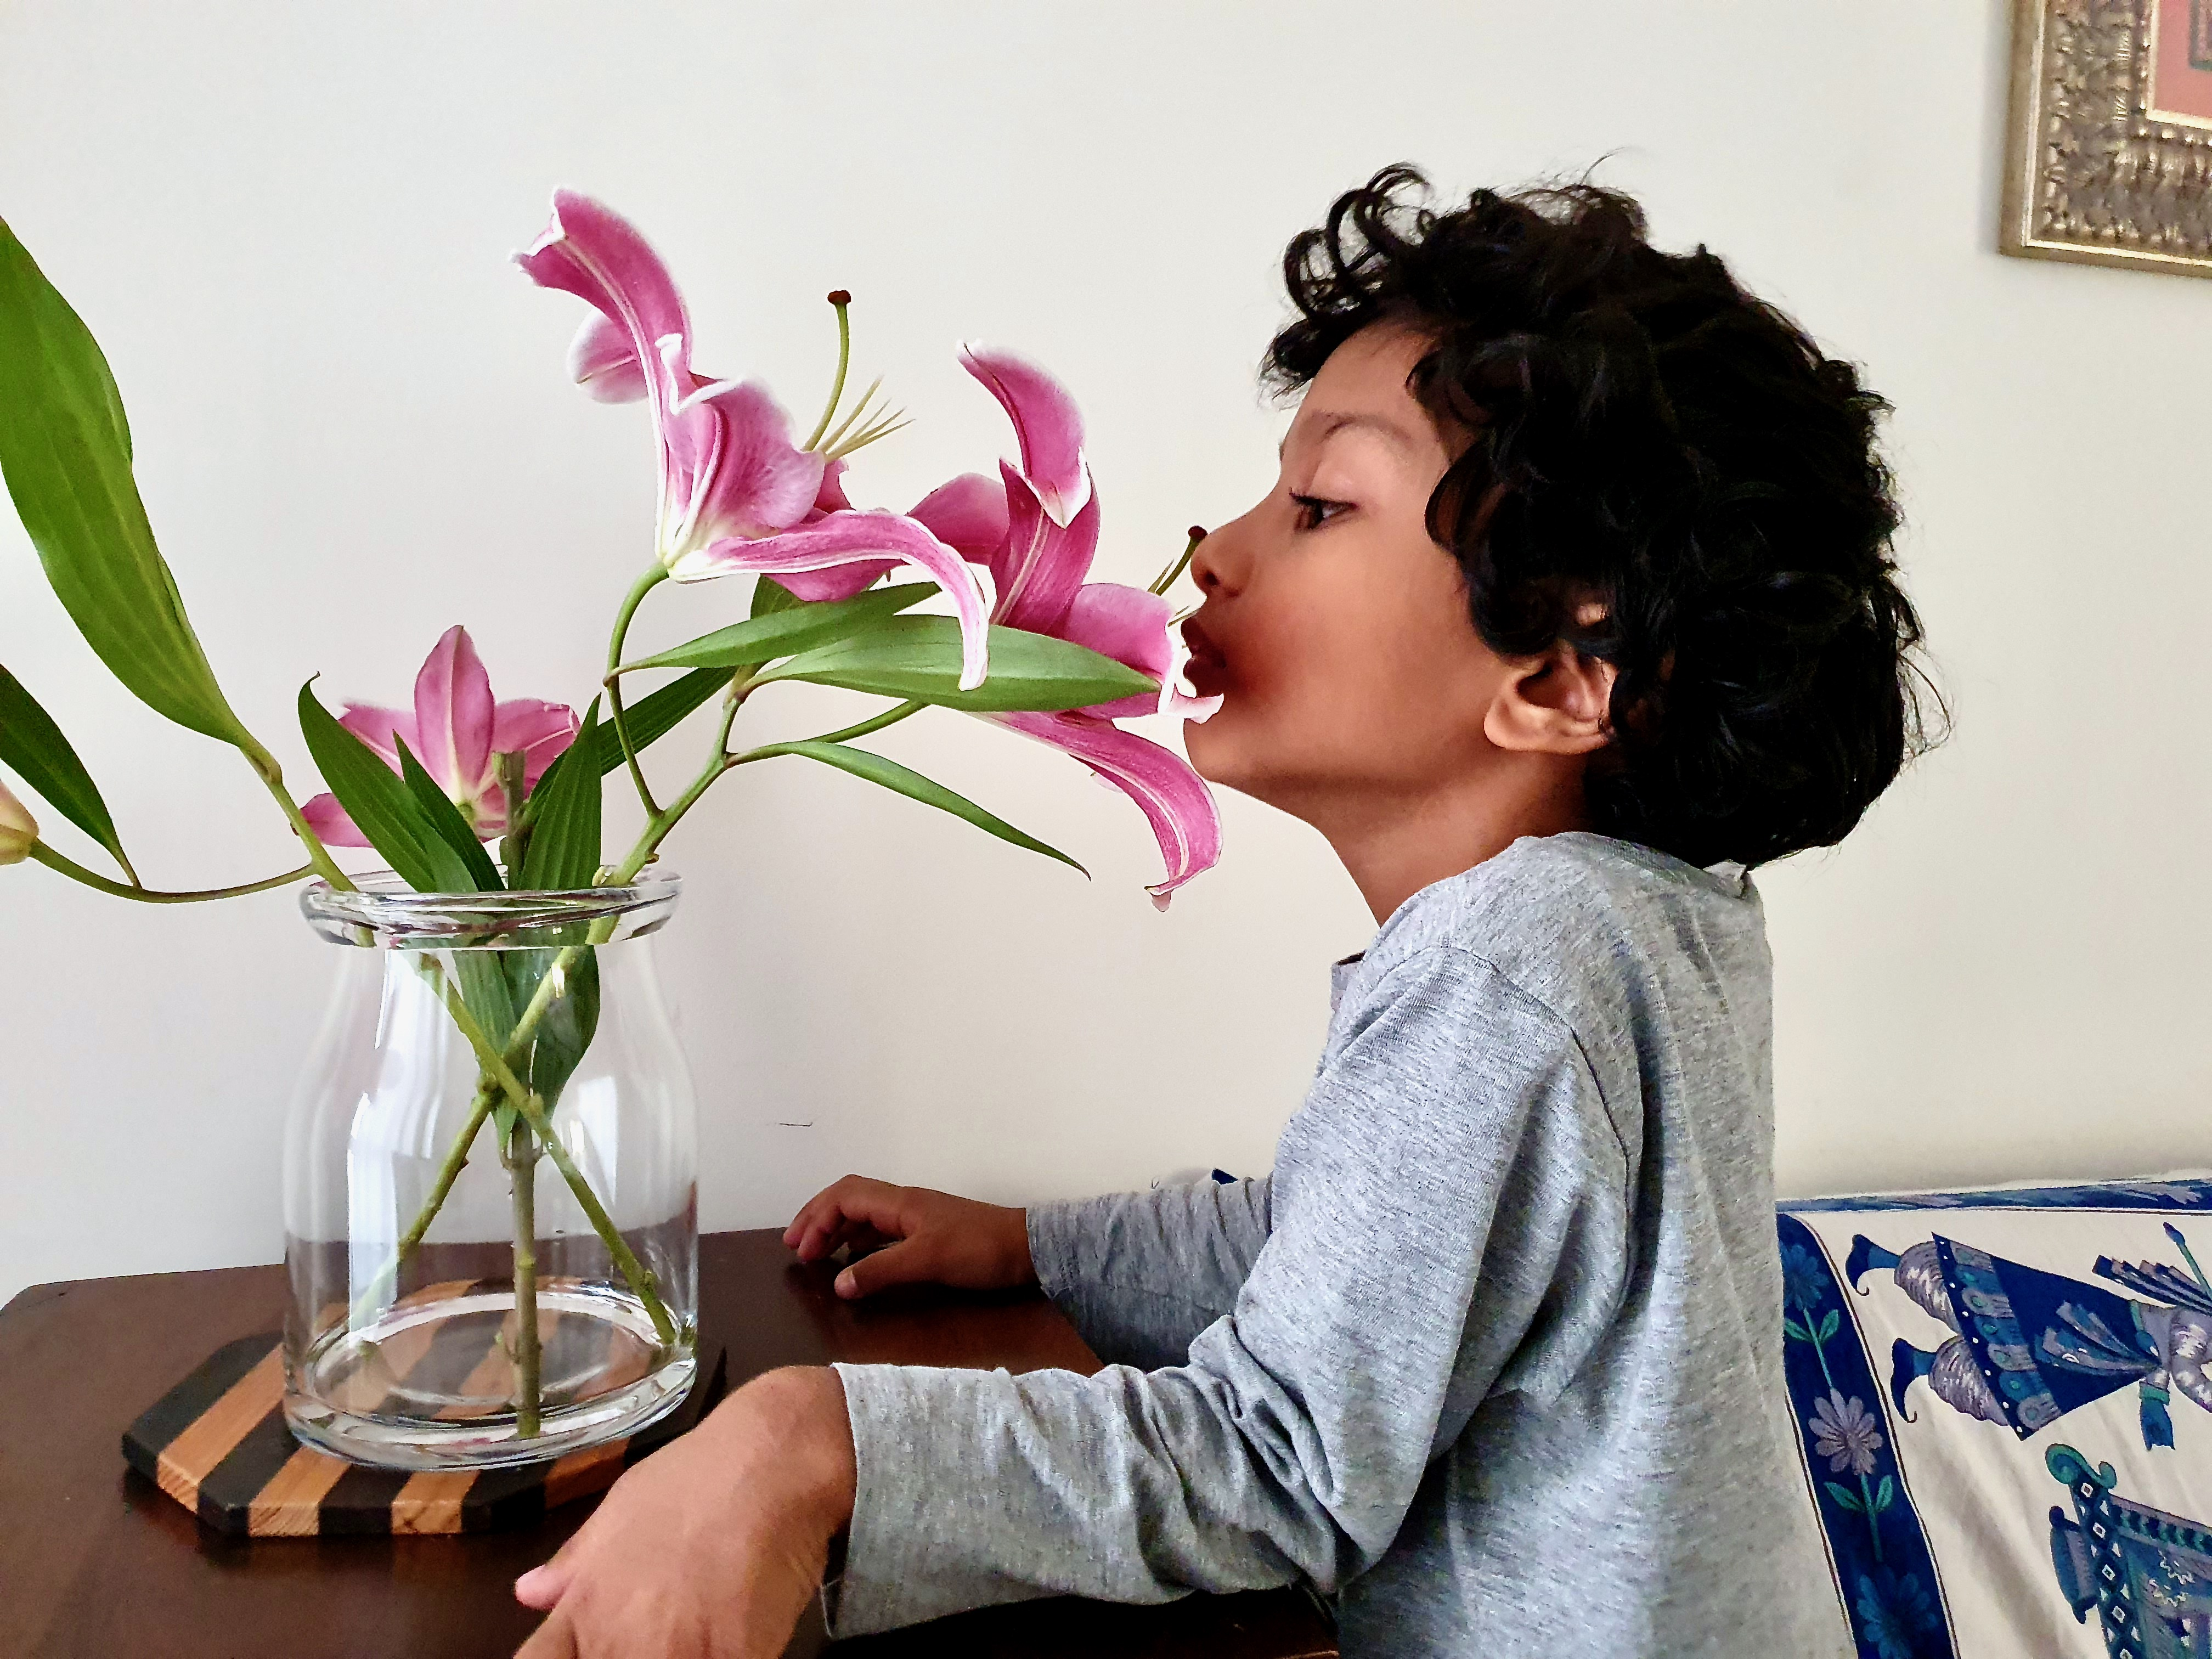 Child smelling lillies